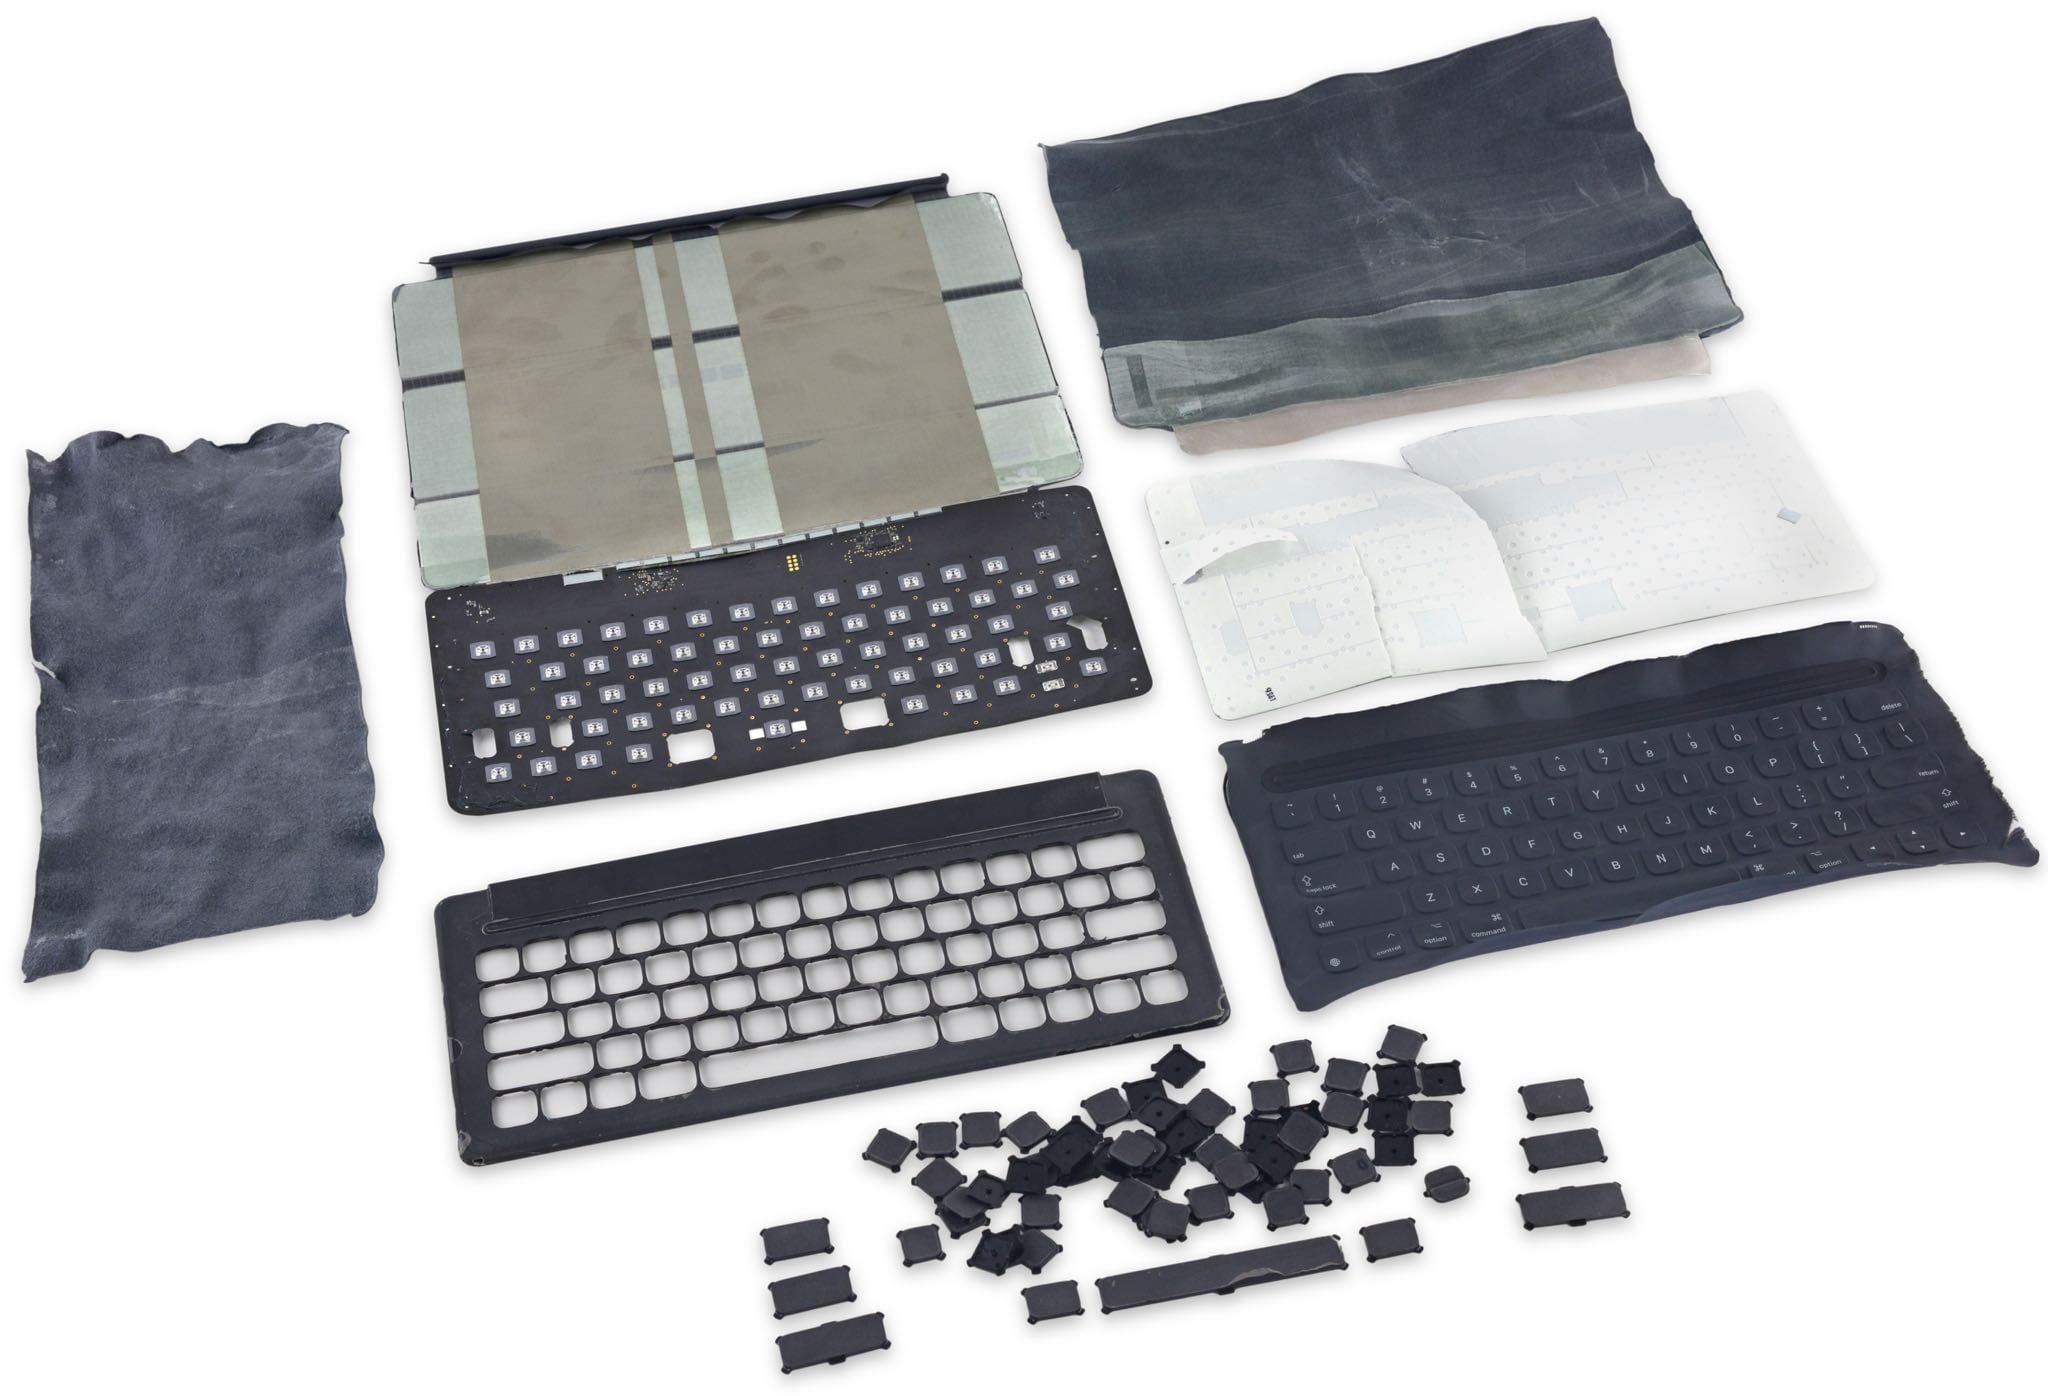 Smart-Keyboard-iFixit-teardown-003